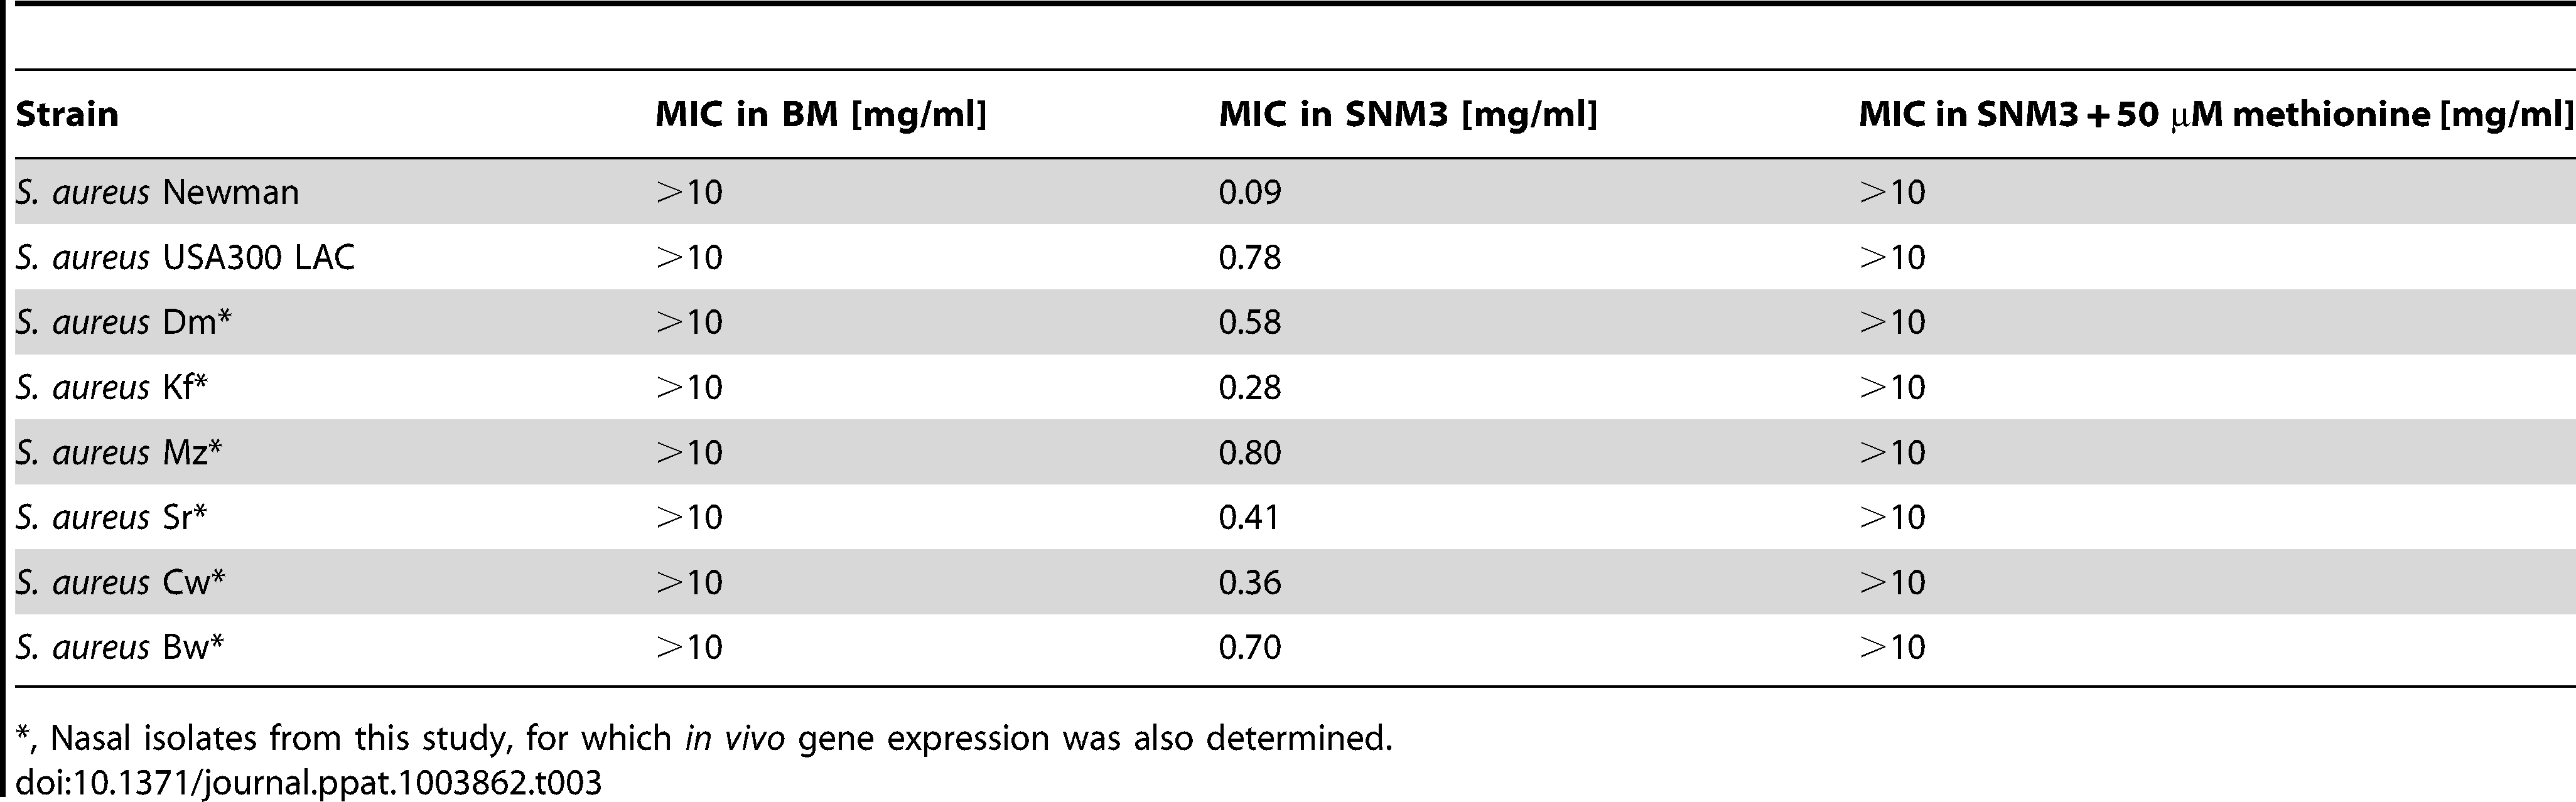 MIC values of DL-propargylglycine for <i>S. aureus</i> strains in complex medium (BM) and SNM3.